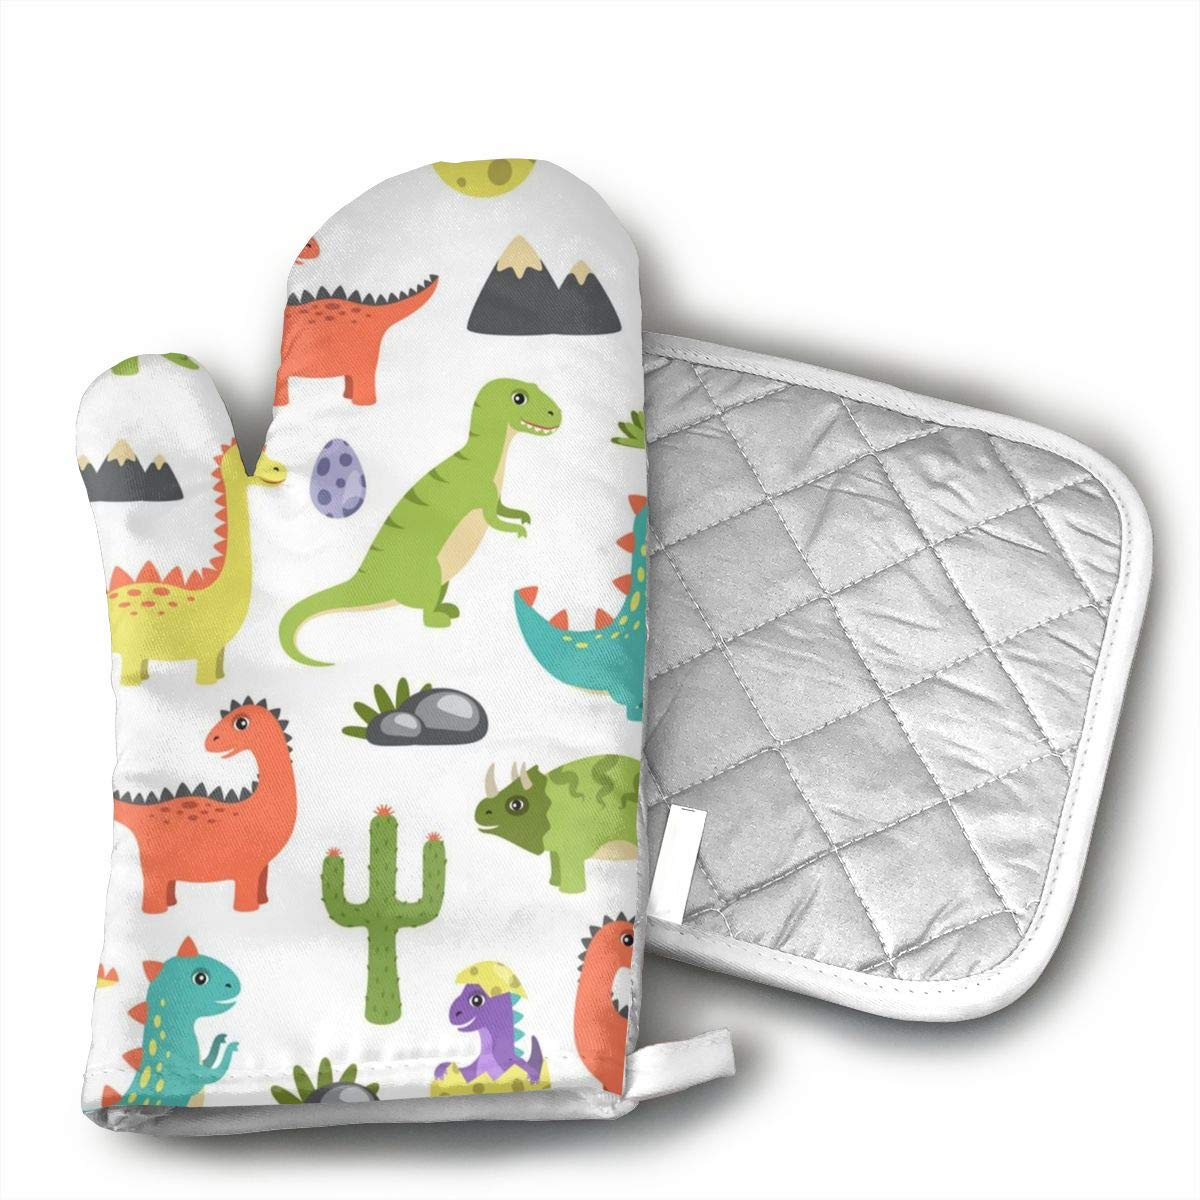 UYRHFS Dino Image Oven Mitts and Pot Holder Kitchen Set with, Heat Resistant, Oven Gloves and Pot Holders 2pcs Set for BBQ Cooking Baking